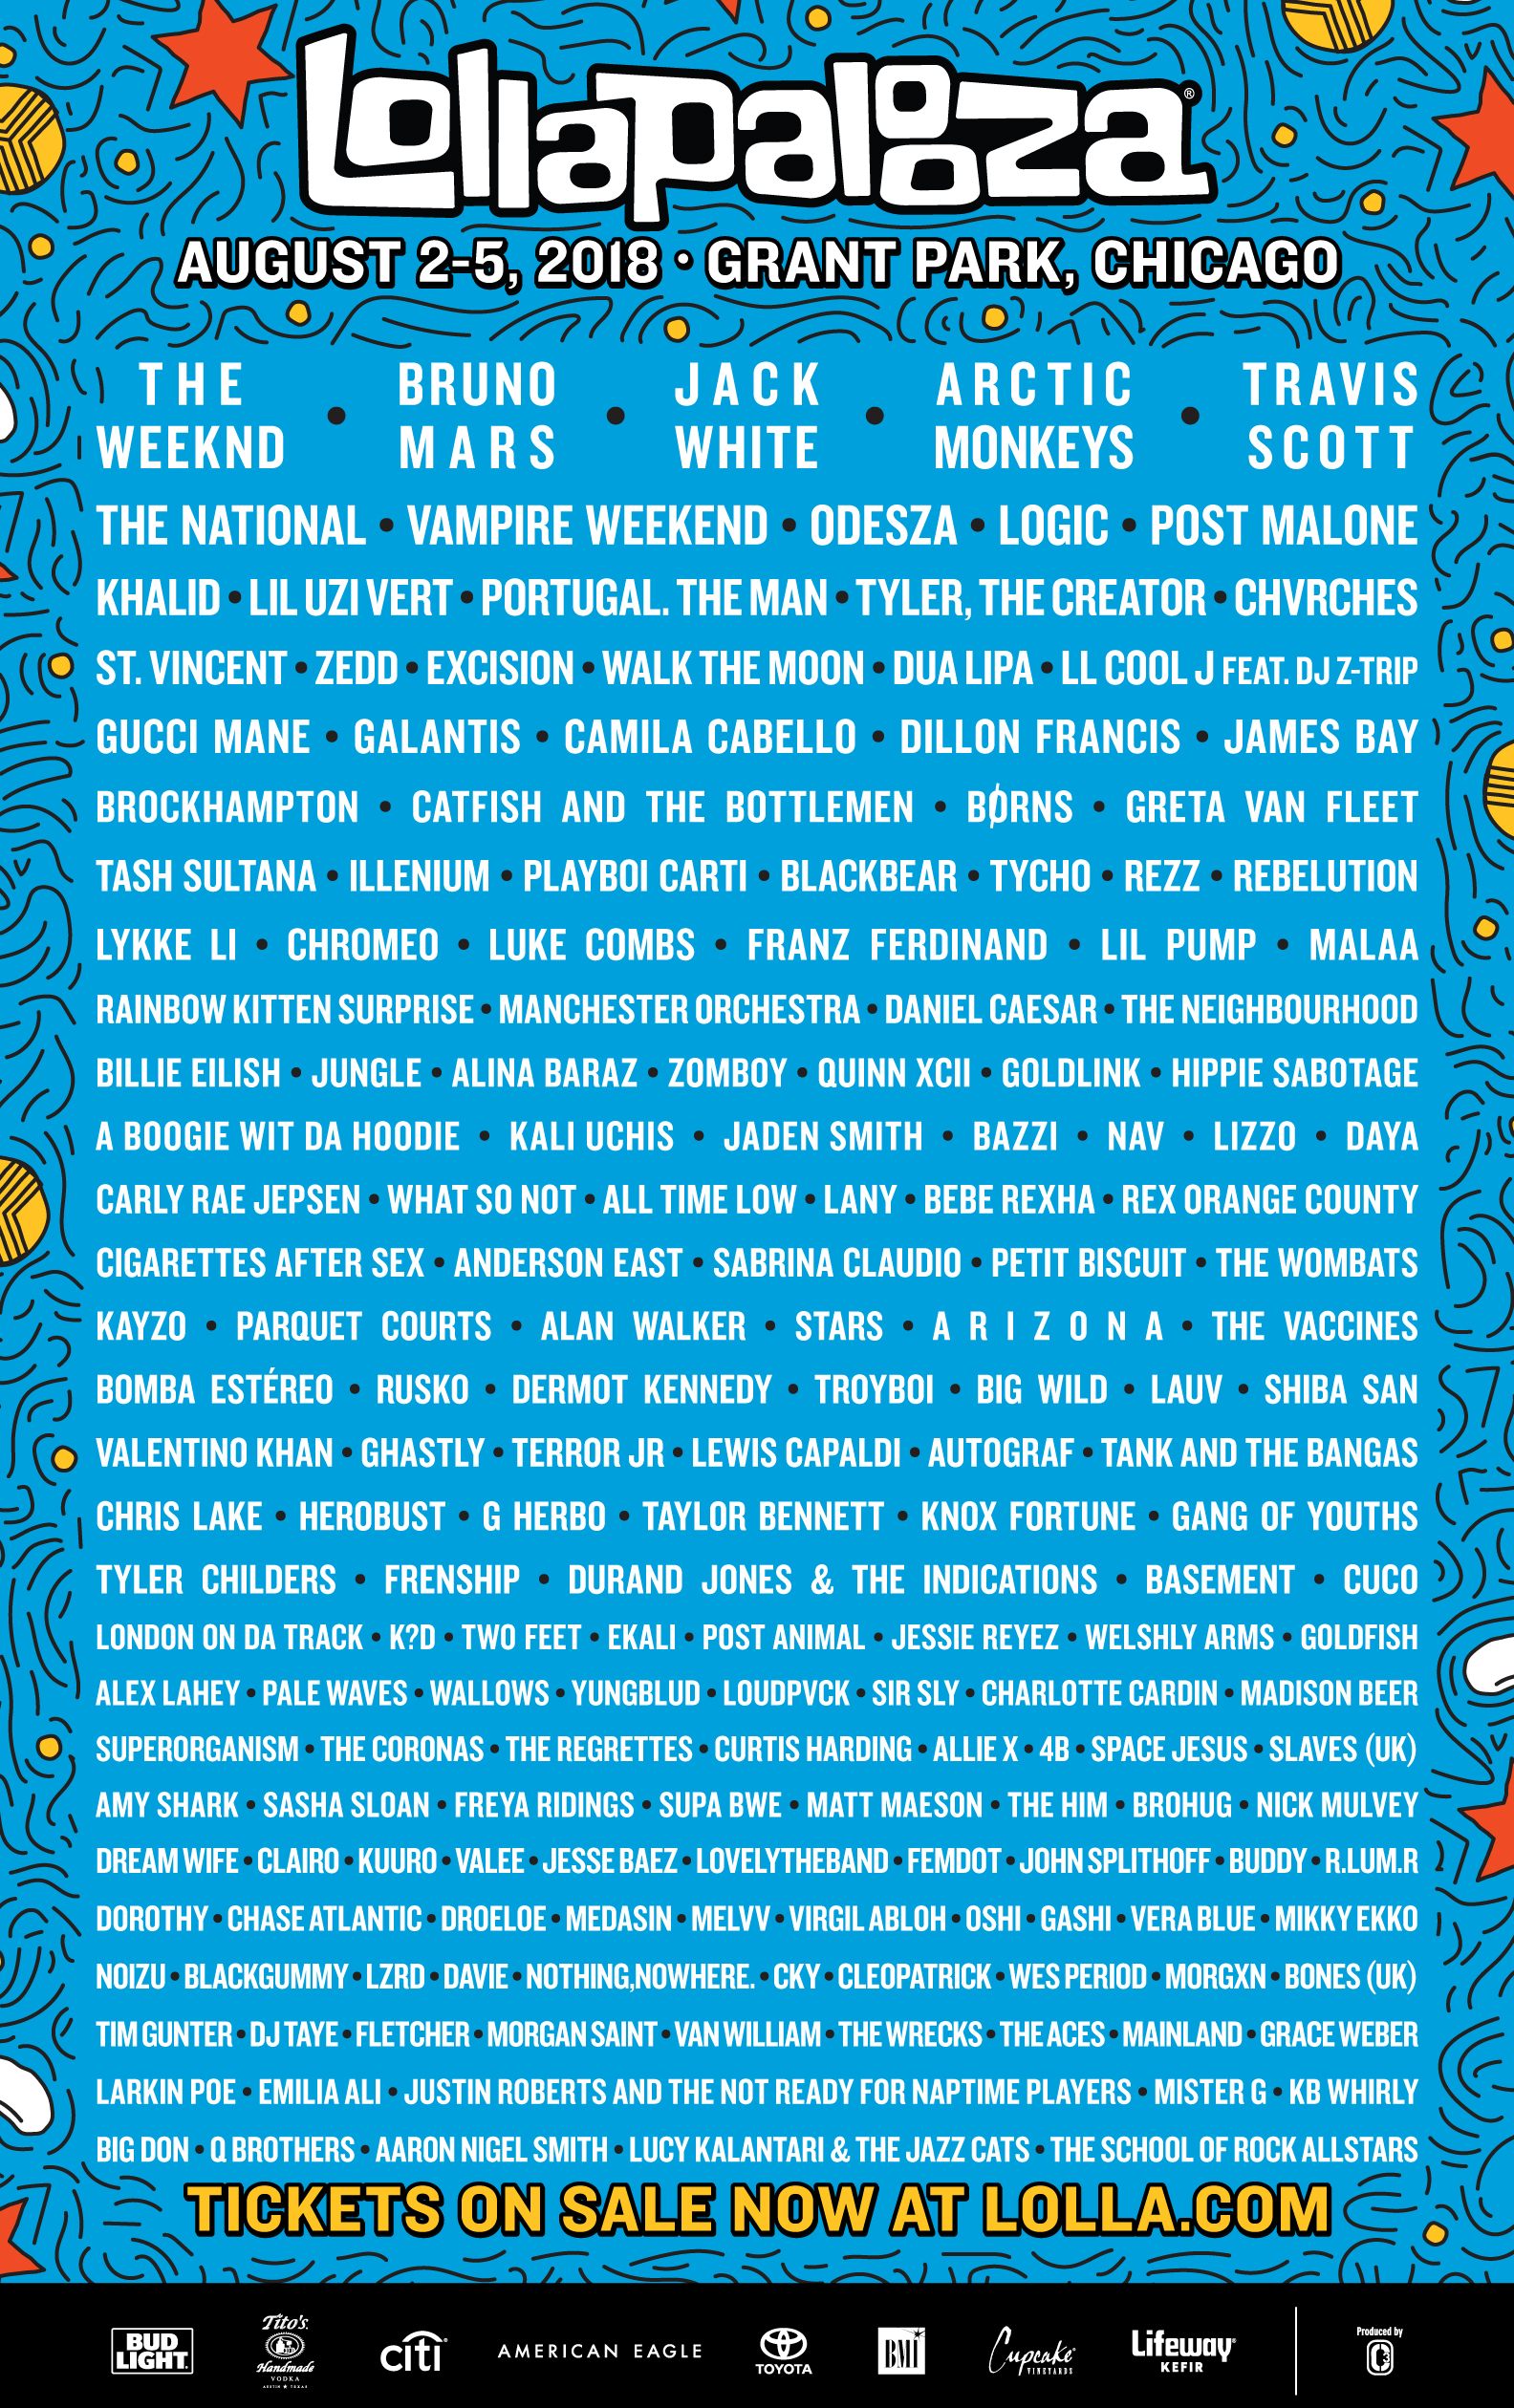 Lollapalooza artist line up.